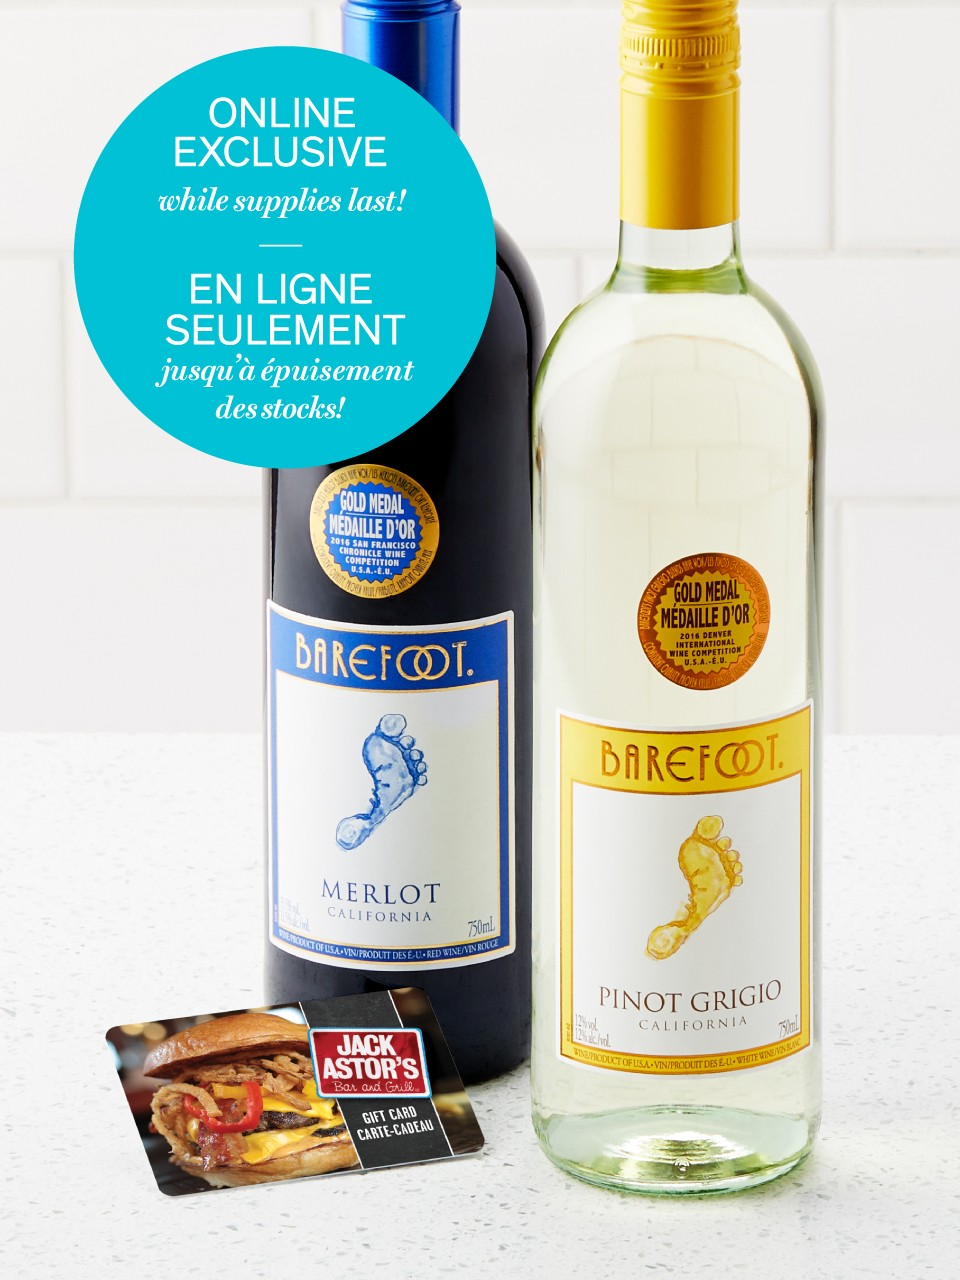 Image for Barefoot Pinot Grigio & Merlot Wine Special Offer from LCBO